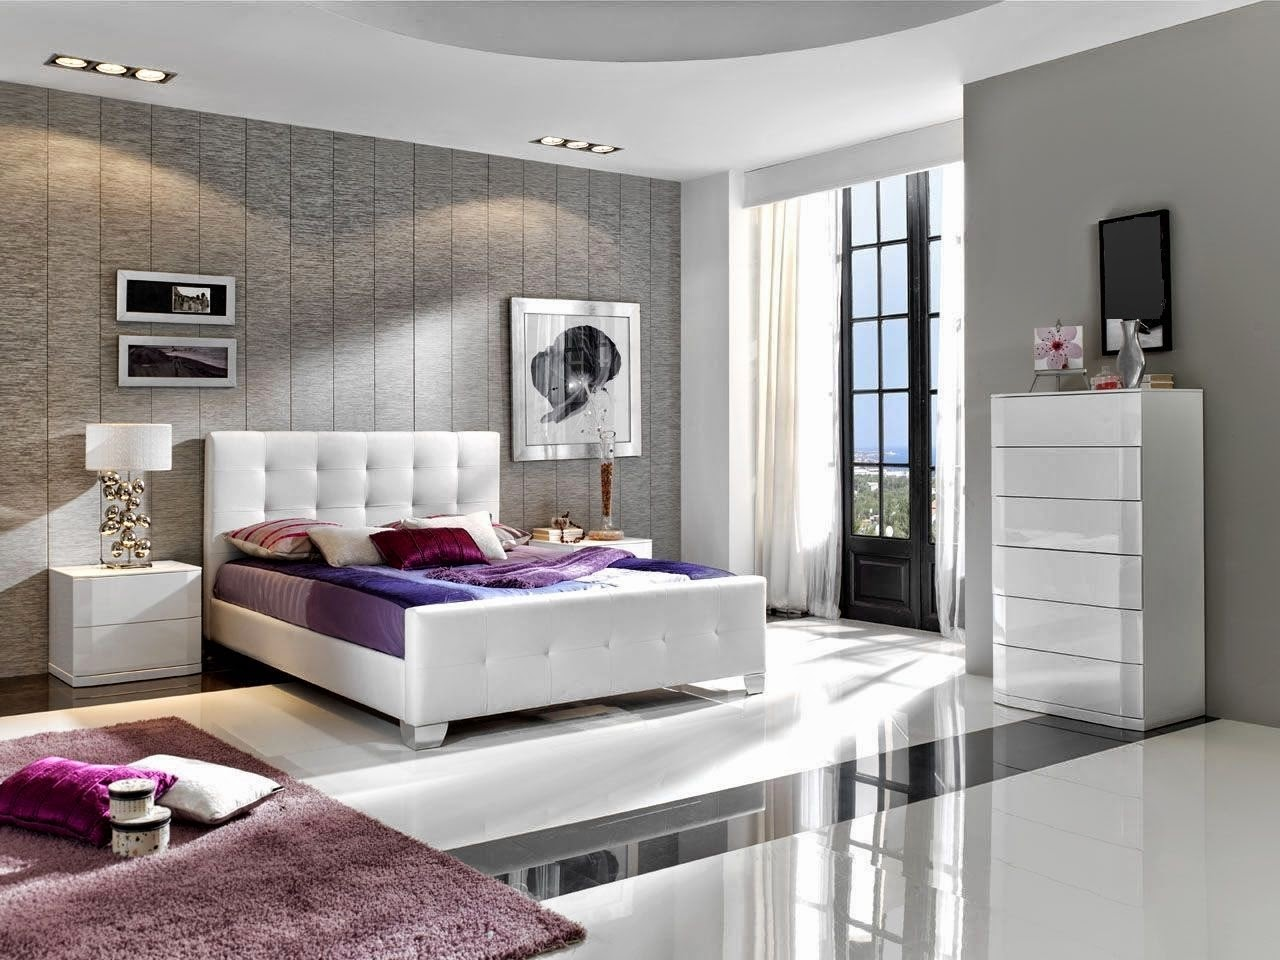 d coration de chambre adulte romantique id es d co moderne. Black Bedroom Furniture Sets. Home Design Ideas